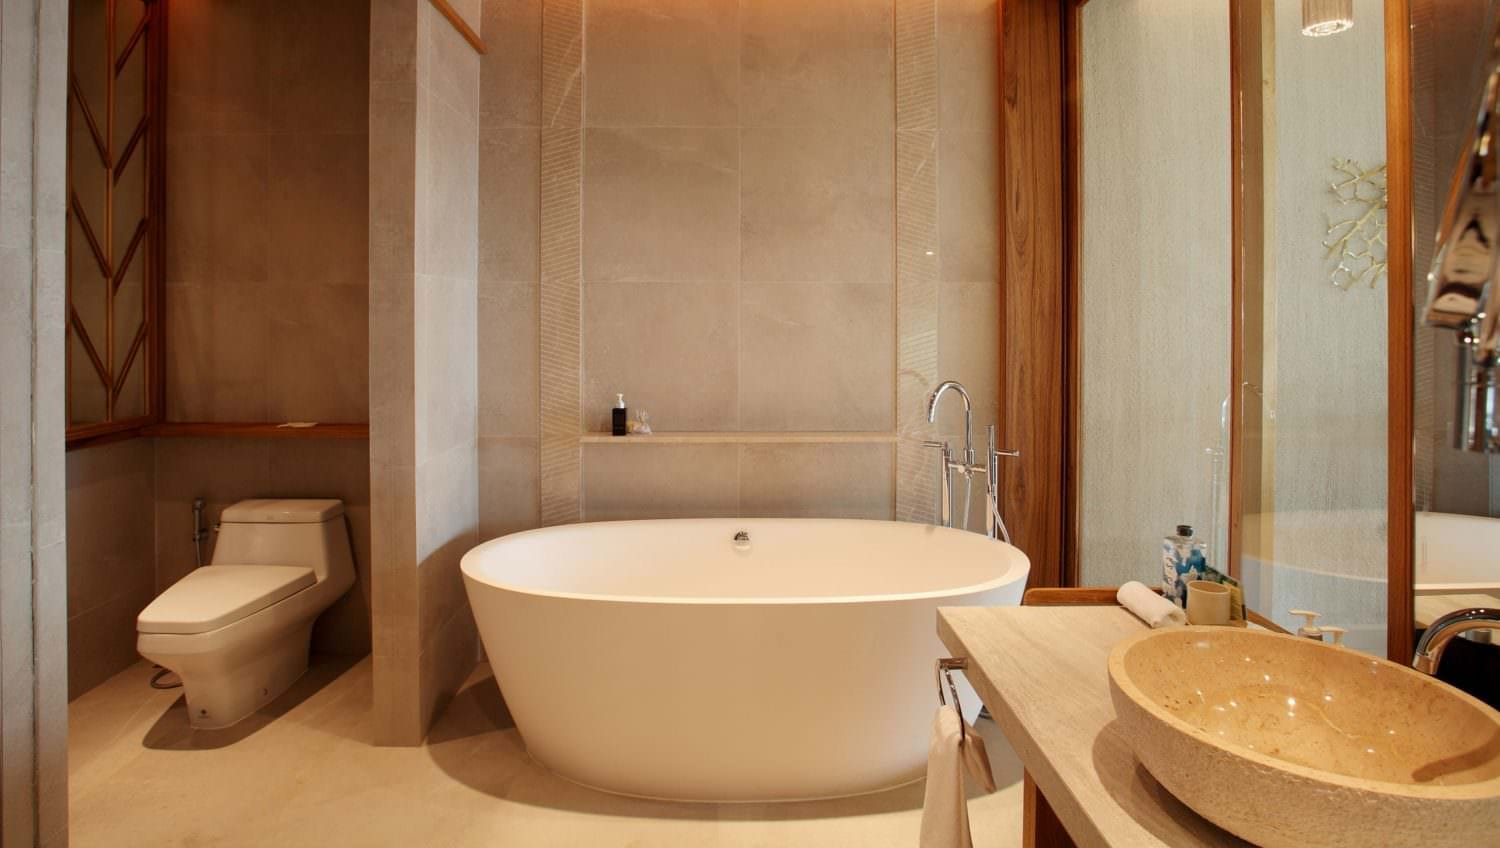 6-Pool-Suite-West-with-Private-Pool-Sri-Panwa-Luxury-Hotel-Phuket